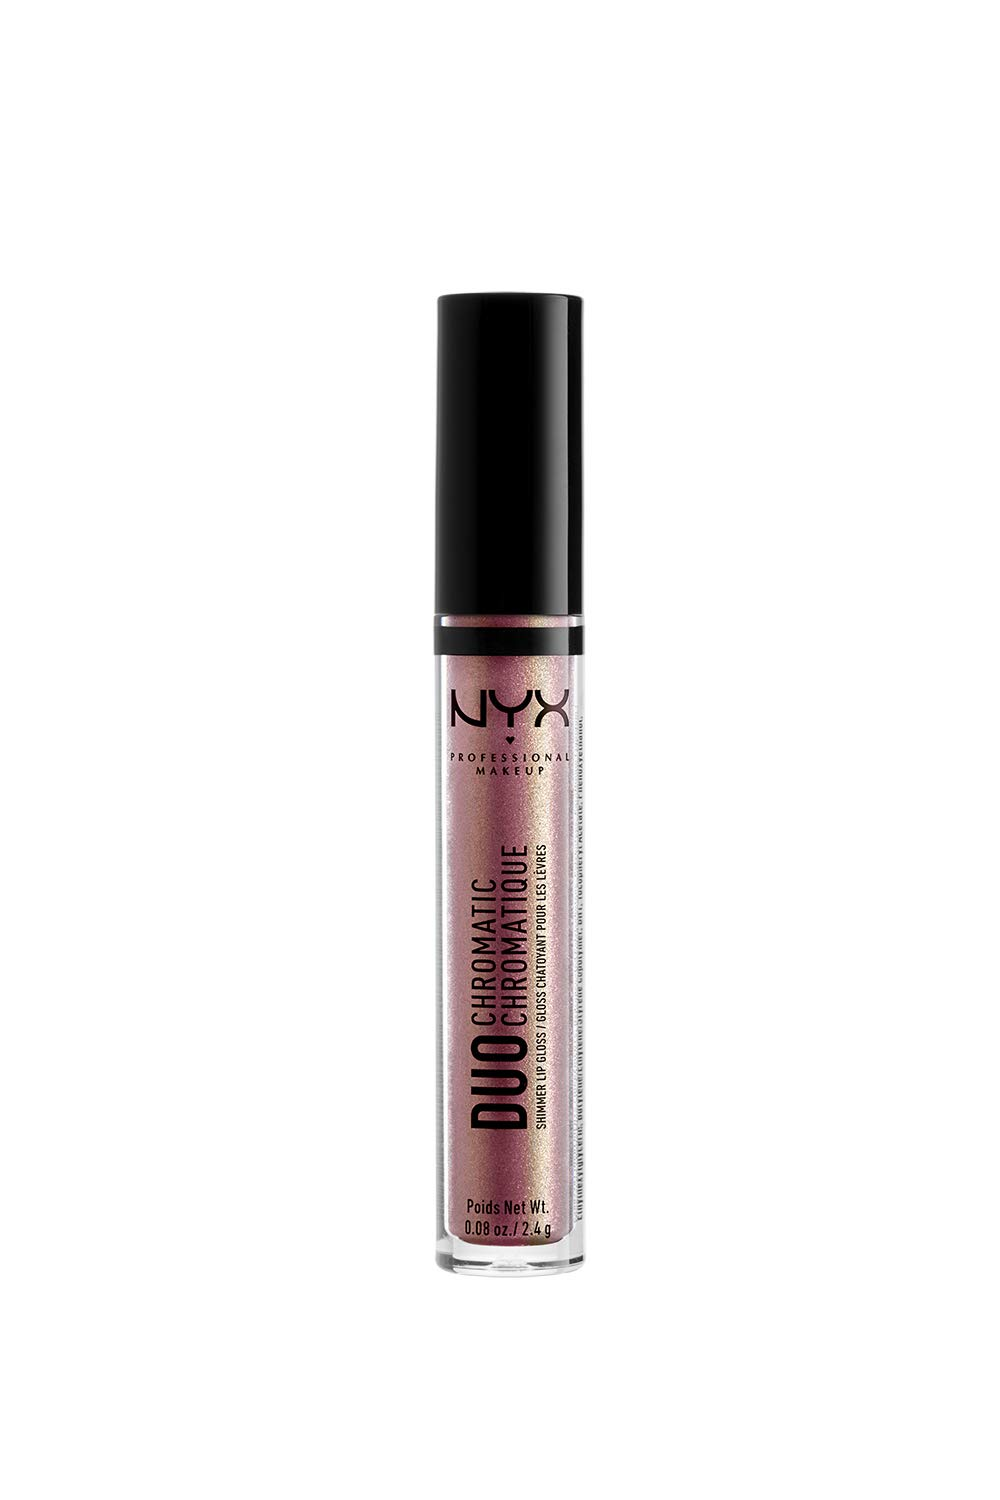 NYX PROFESSIONAL MAKEUP Duo Chromatic Lip Gloss, Spring It On